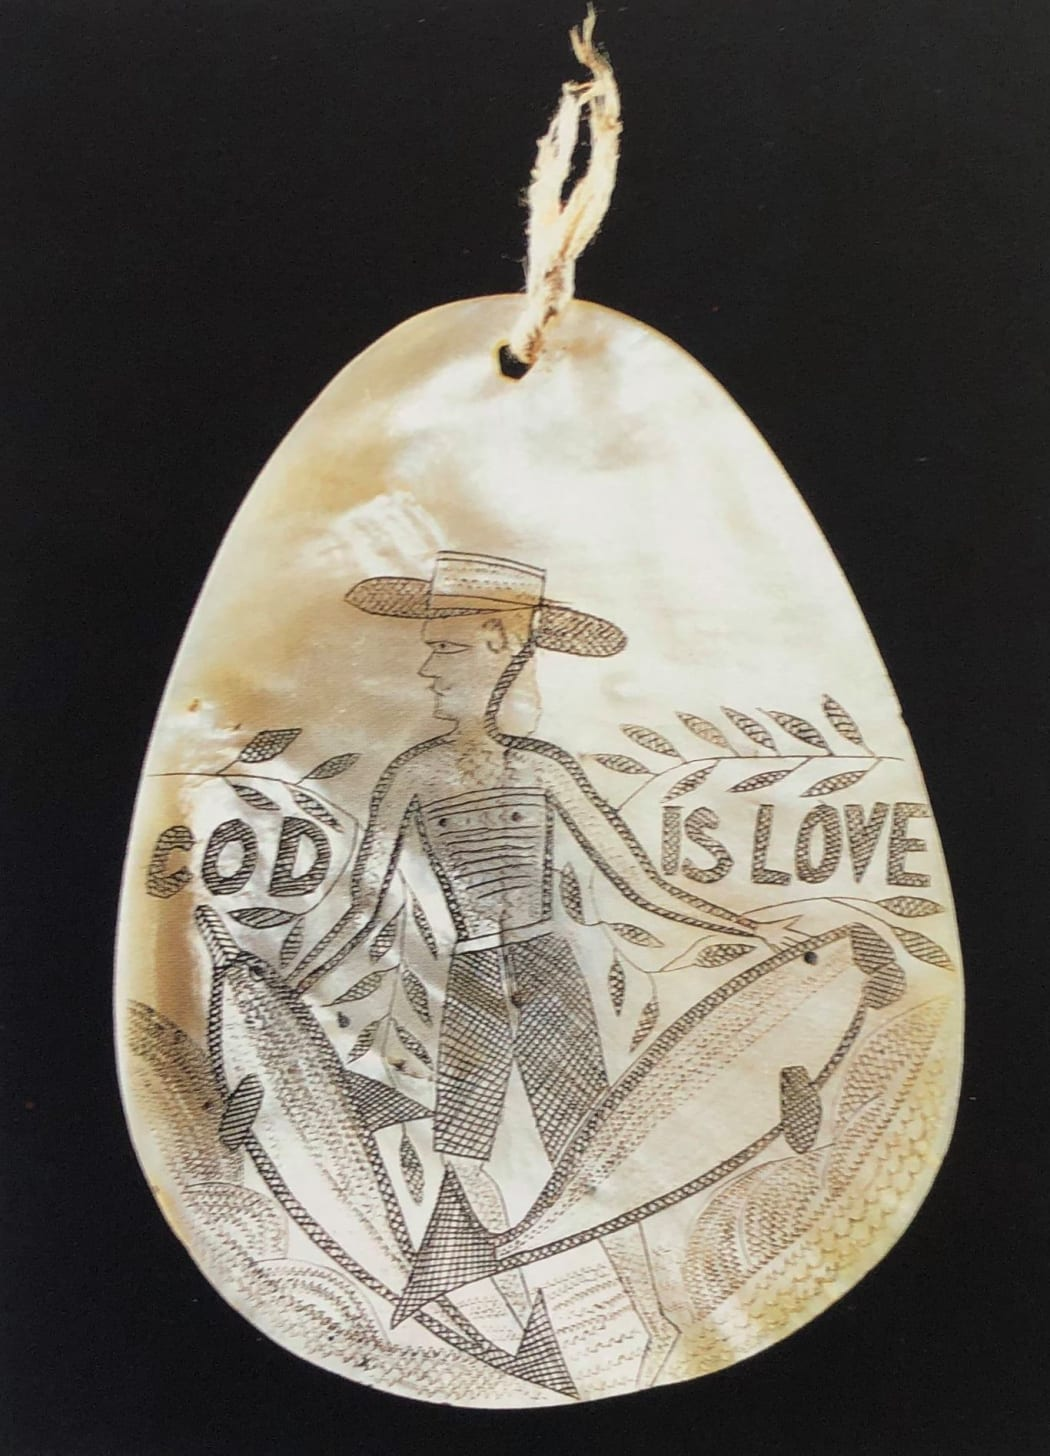 """""""Cod is love"""", a unique pearl shell ornament from Western Australia"""